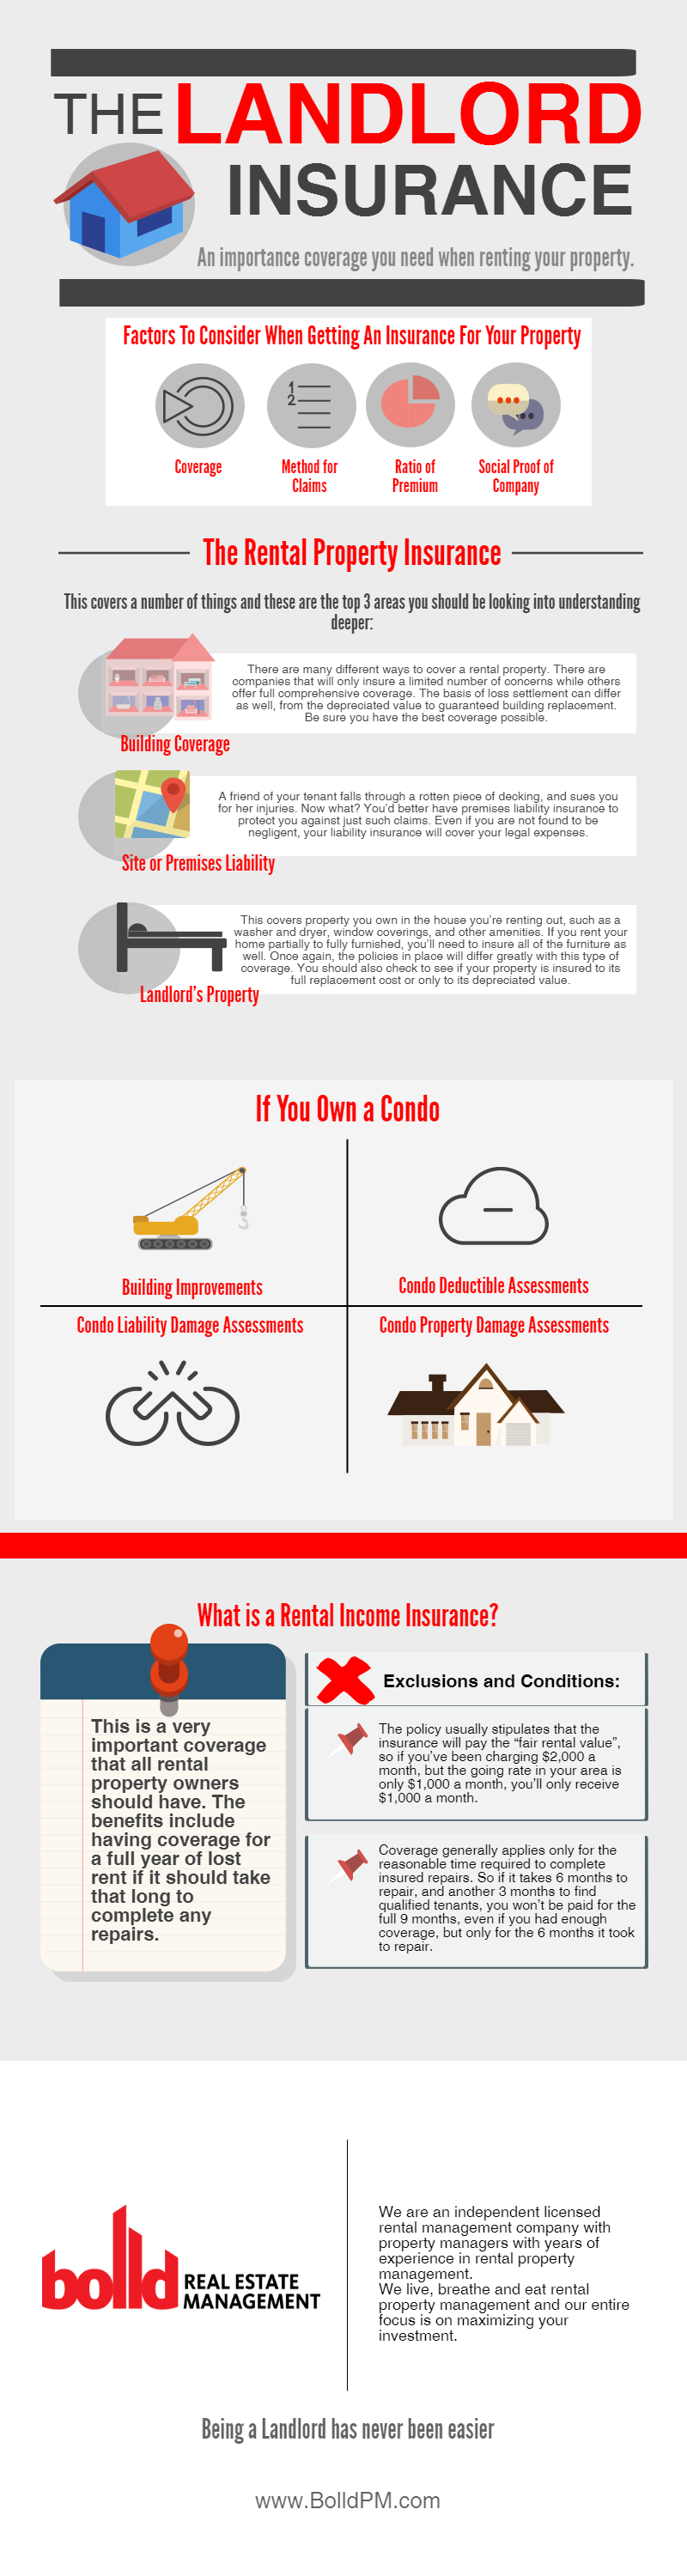 Landlord S Insurance What It Is And Why It Is Important